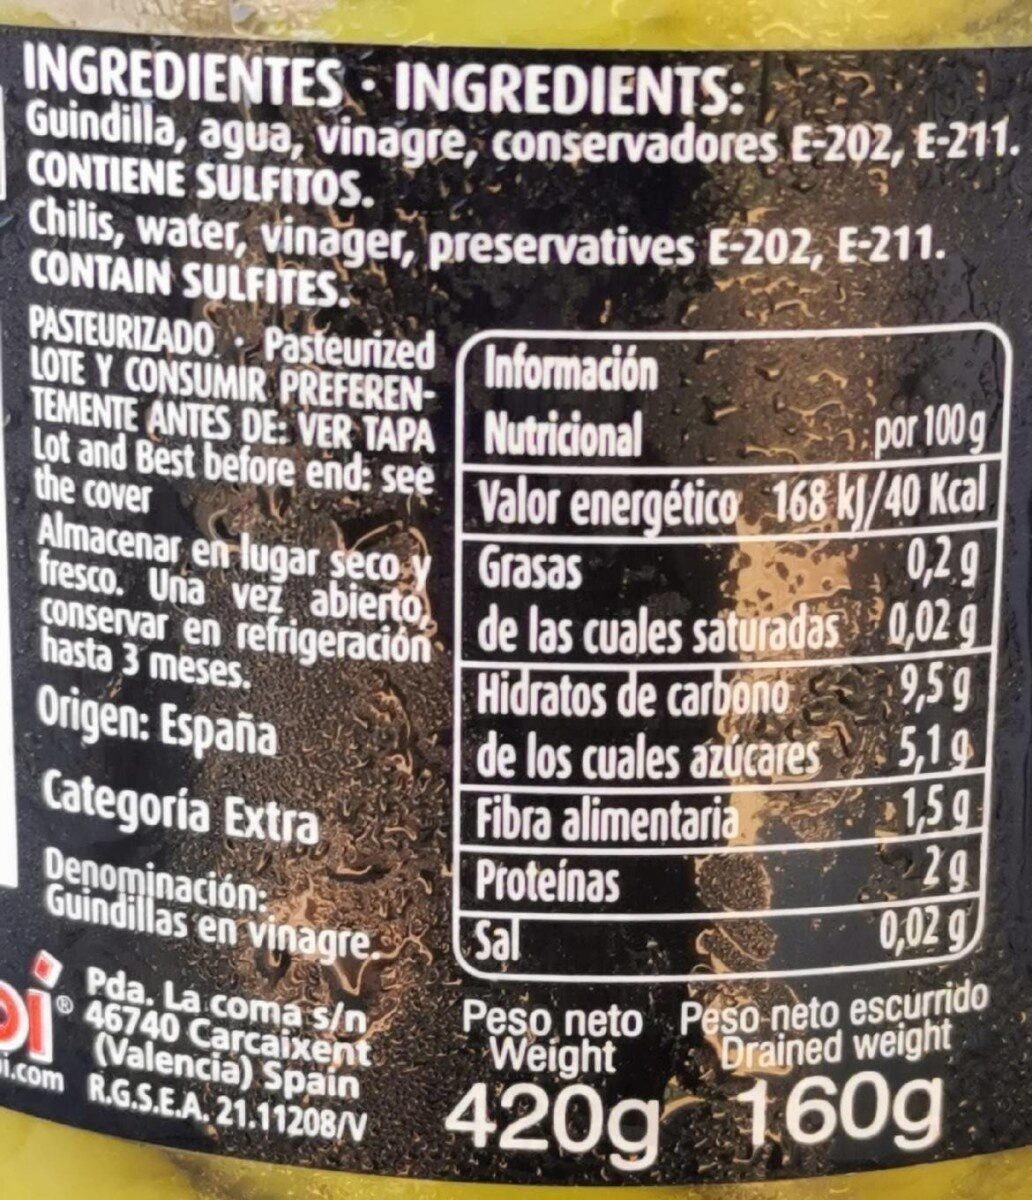 Guindilla vasca en vinagre - Nutrition facts